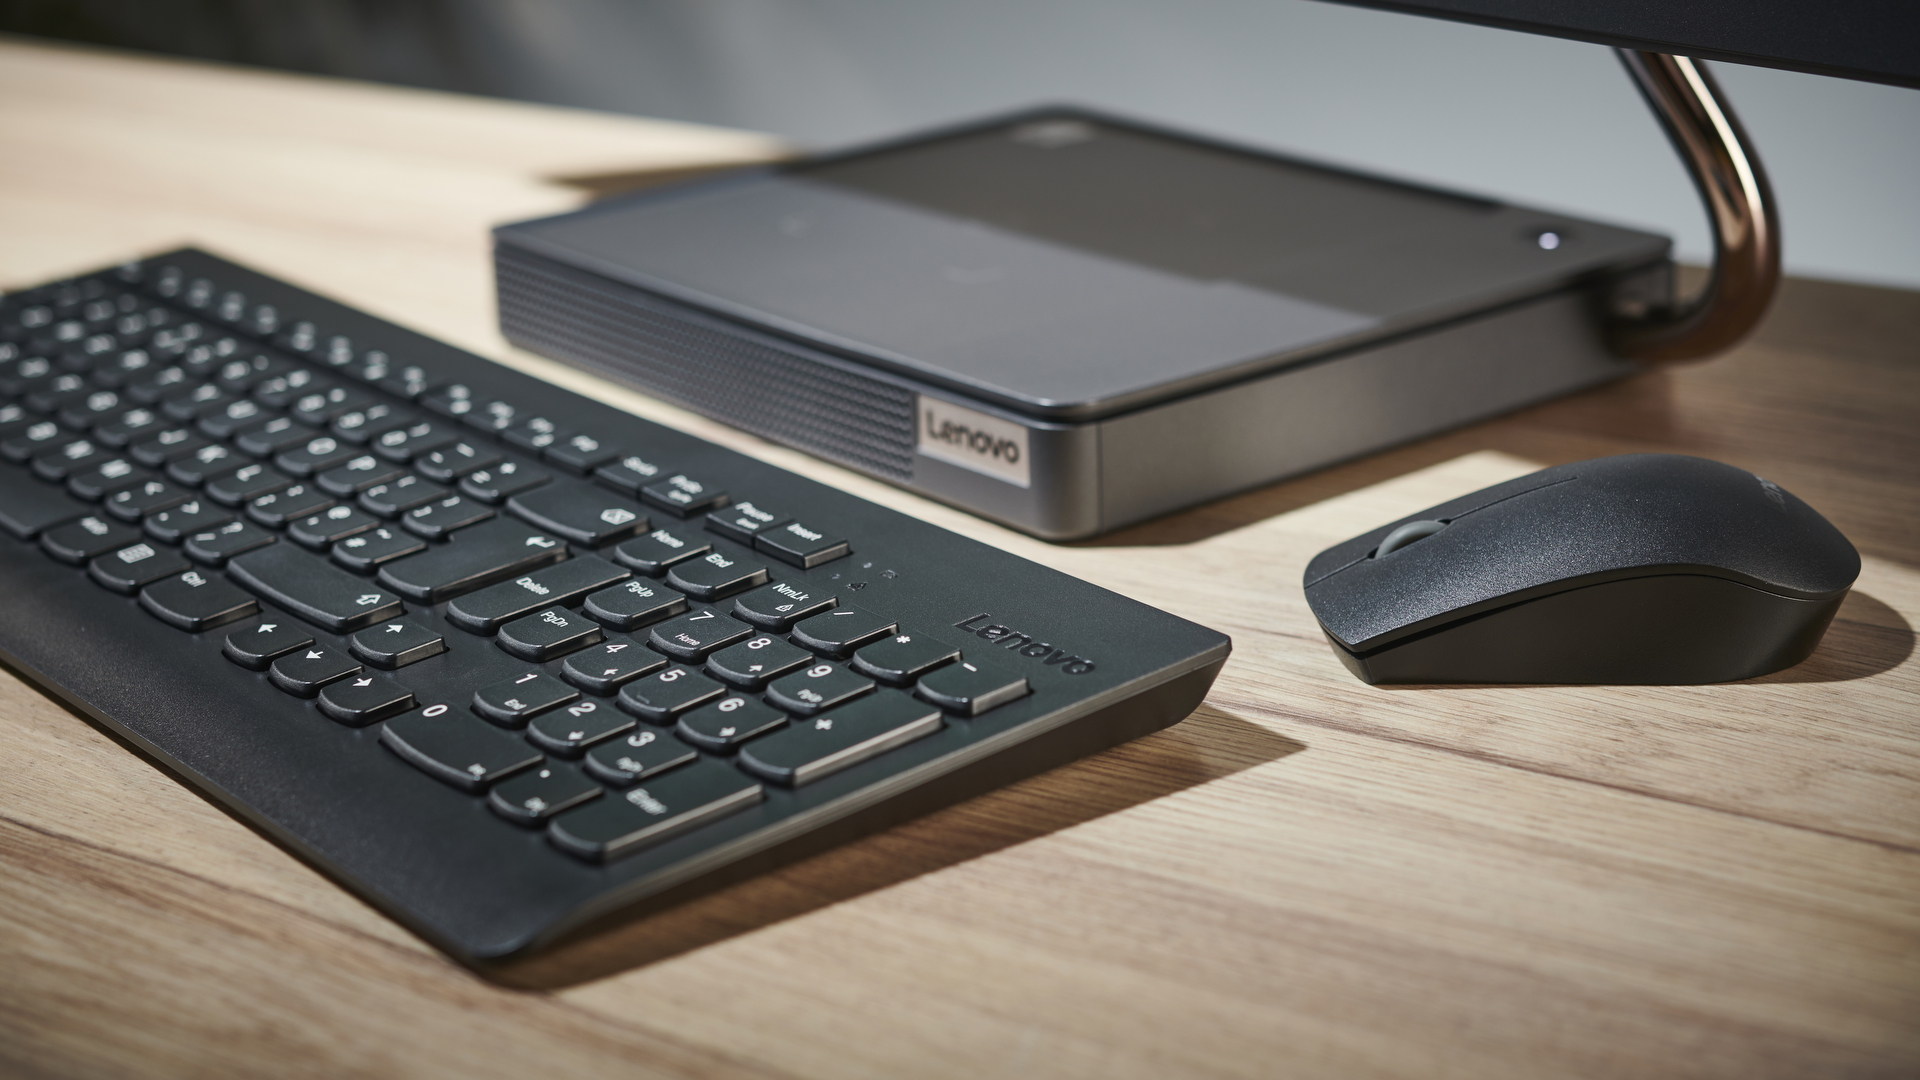 Lenovo IdeaCentre AIO 5 all-in-one PC on a desk in an office close up of keyboard and mouse